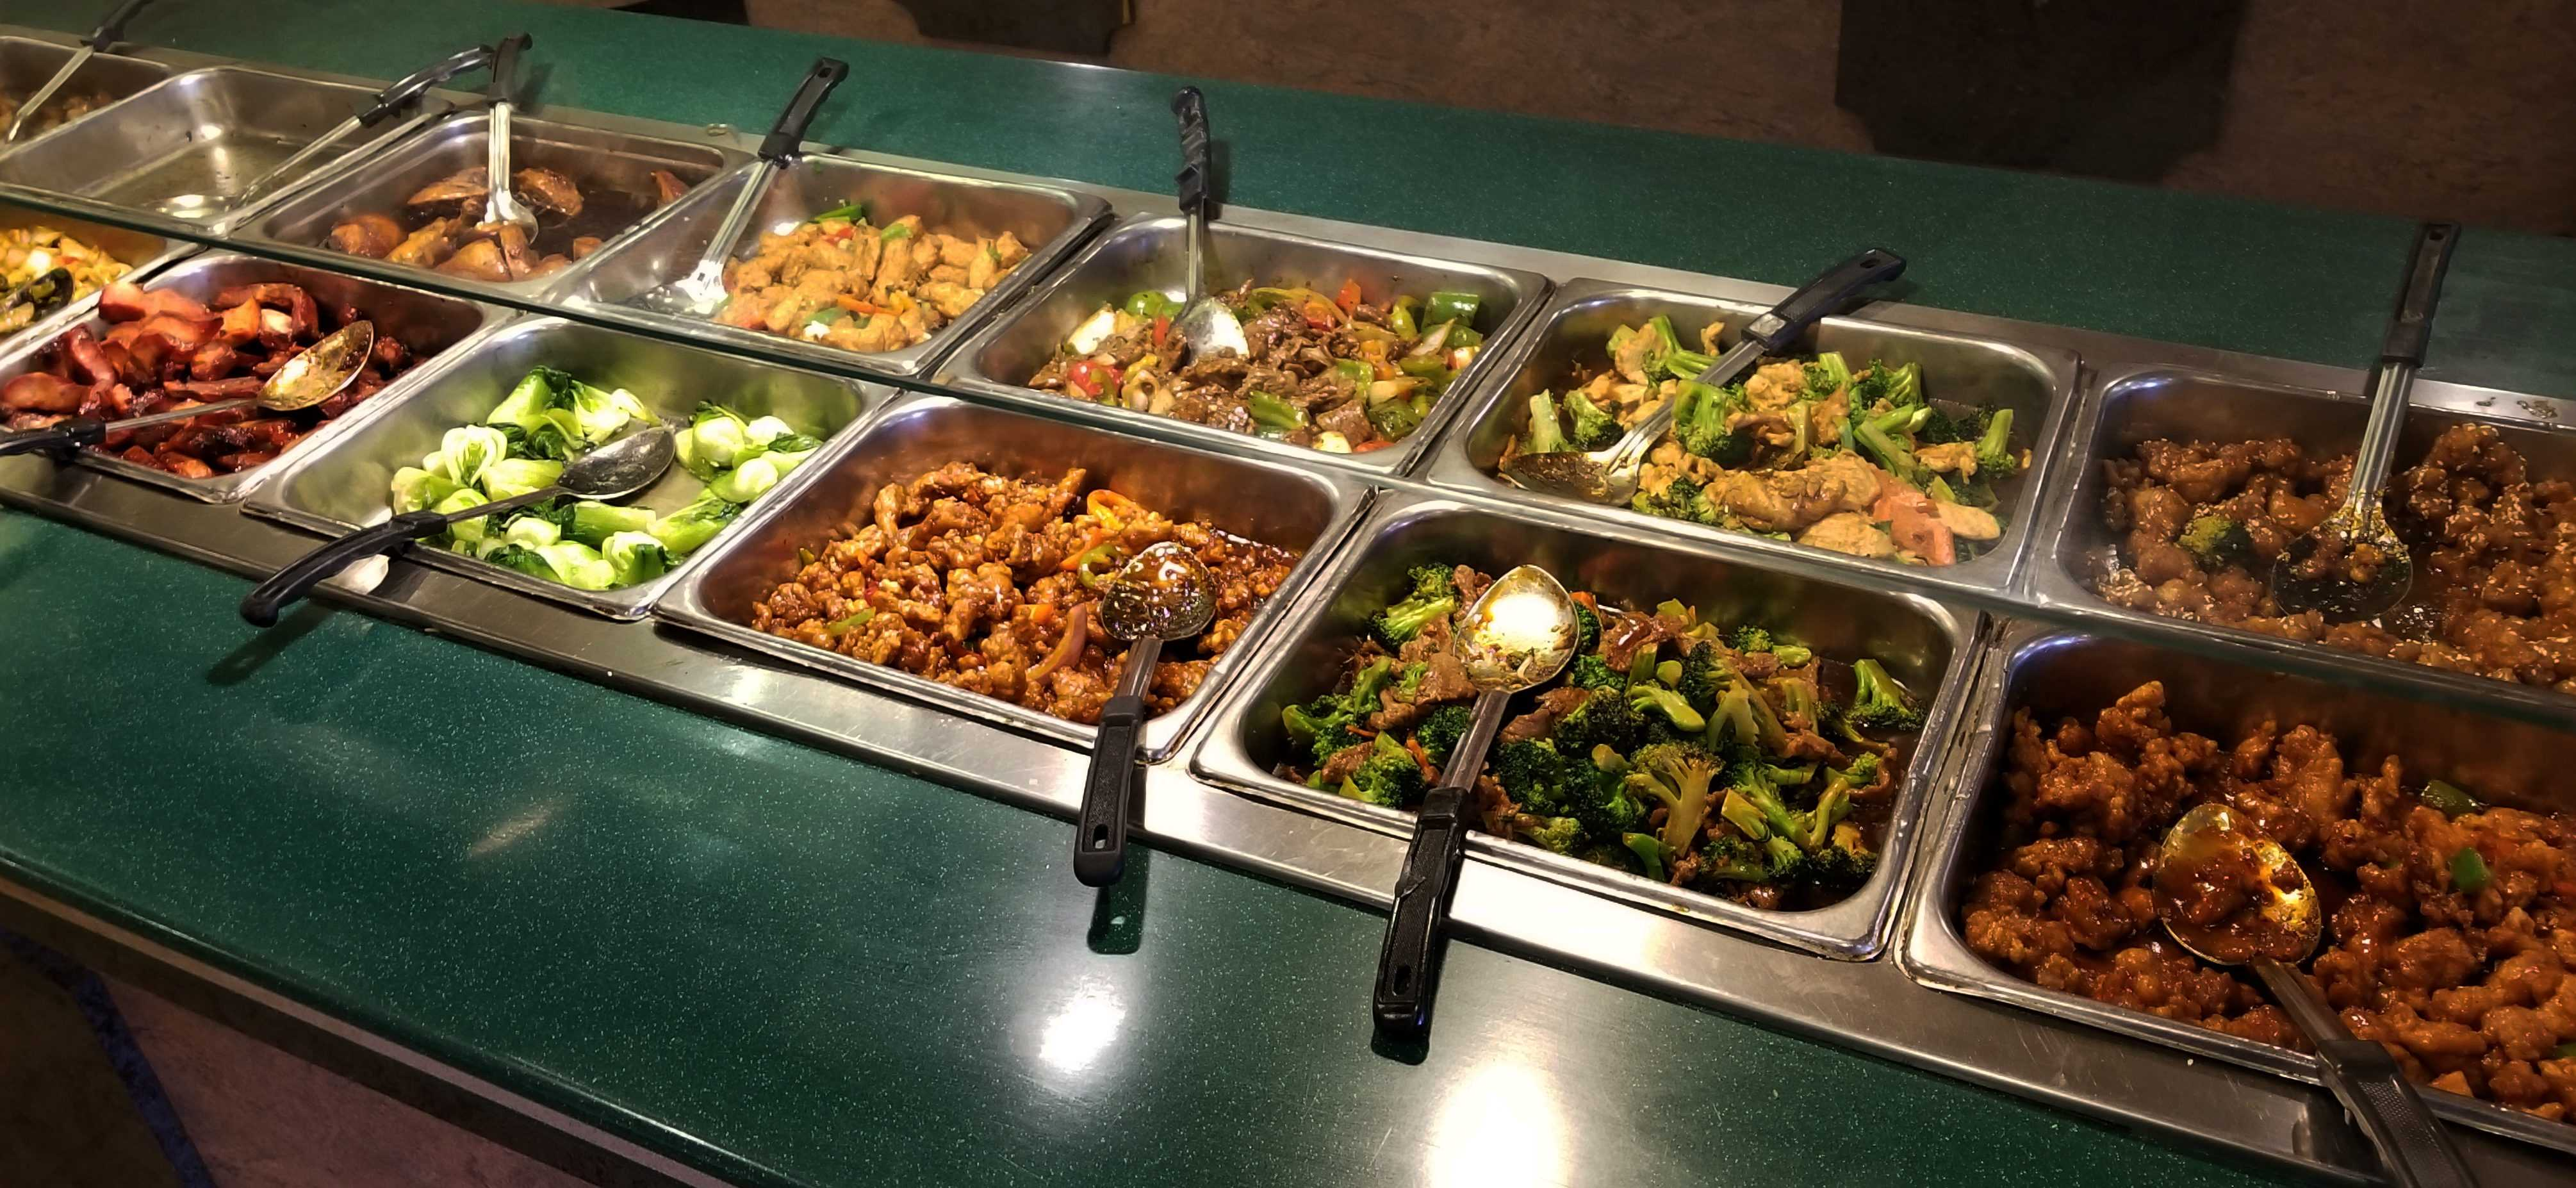 Peking Garden offers an extensive menu and buffet off of Snelling